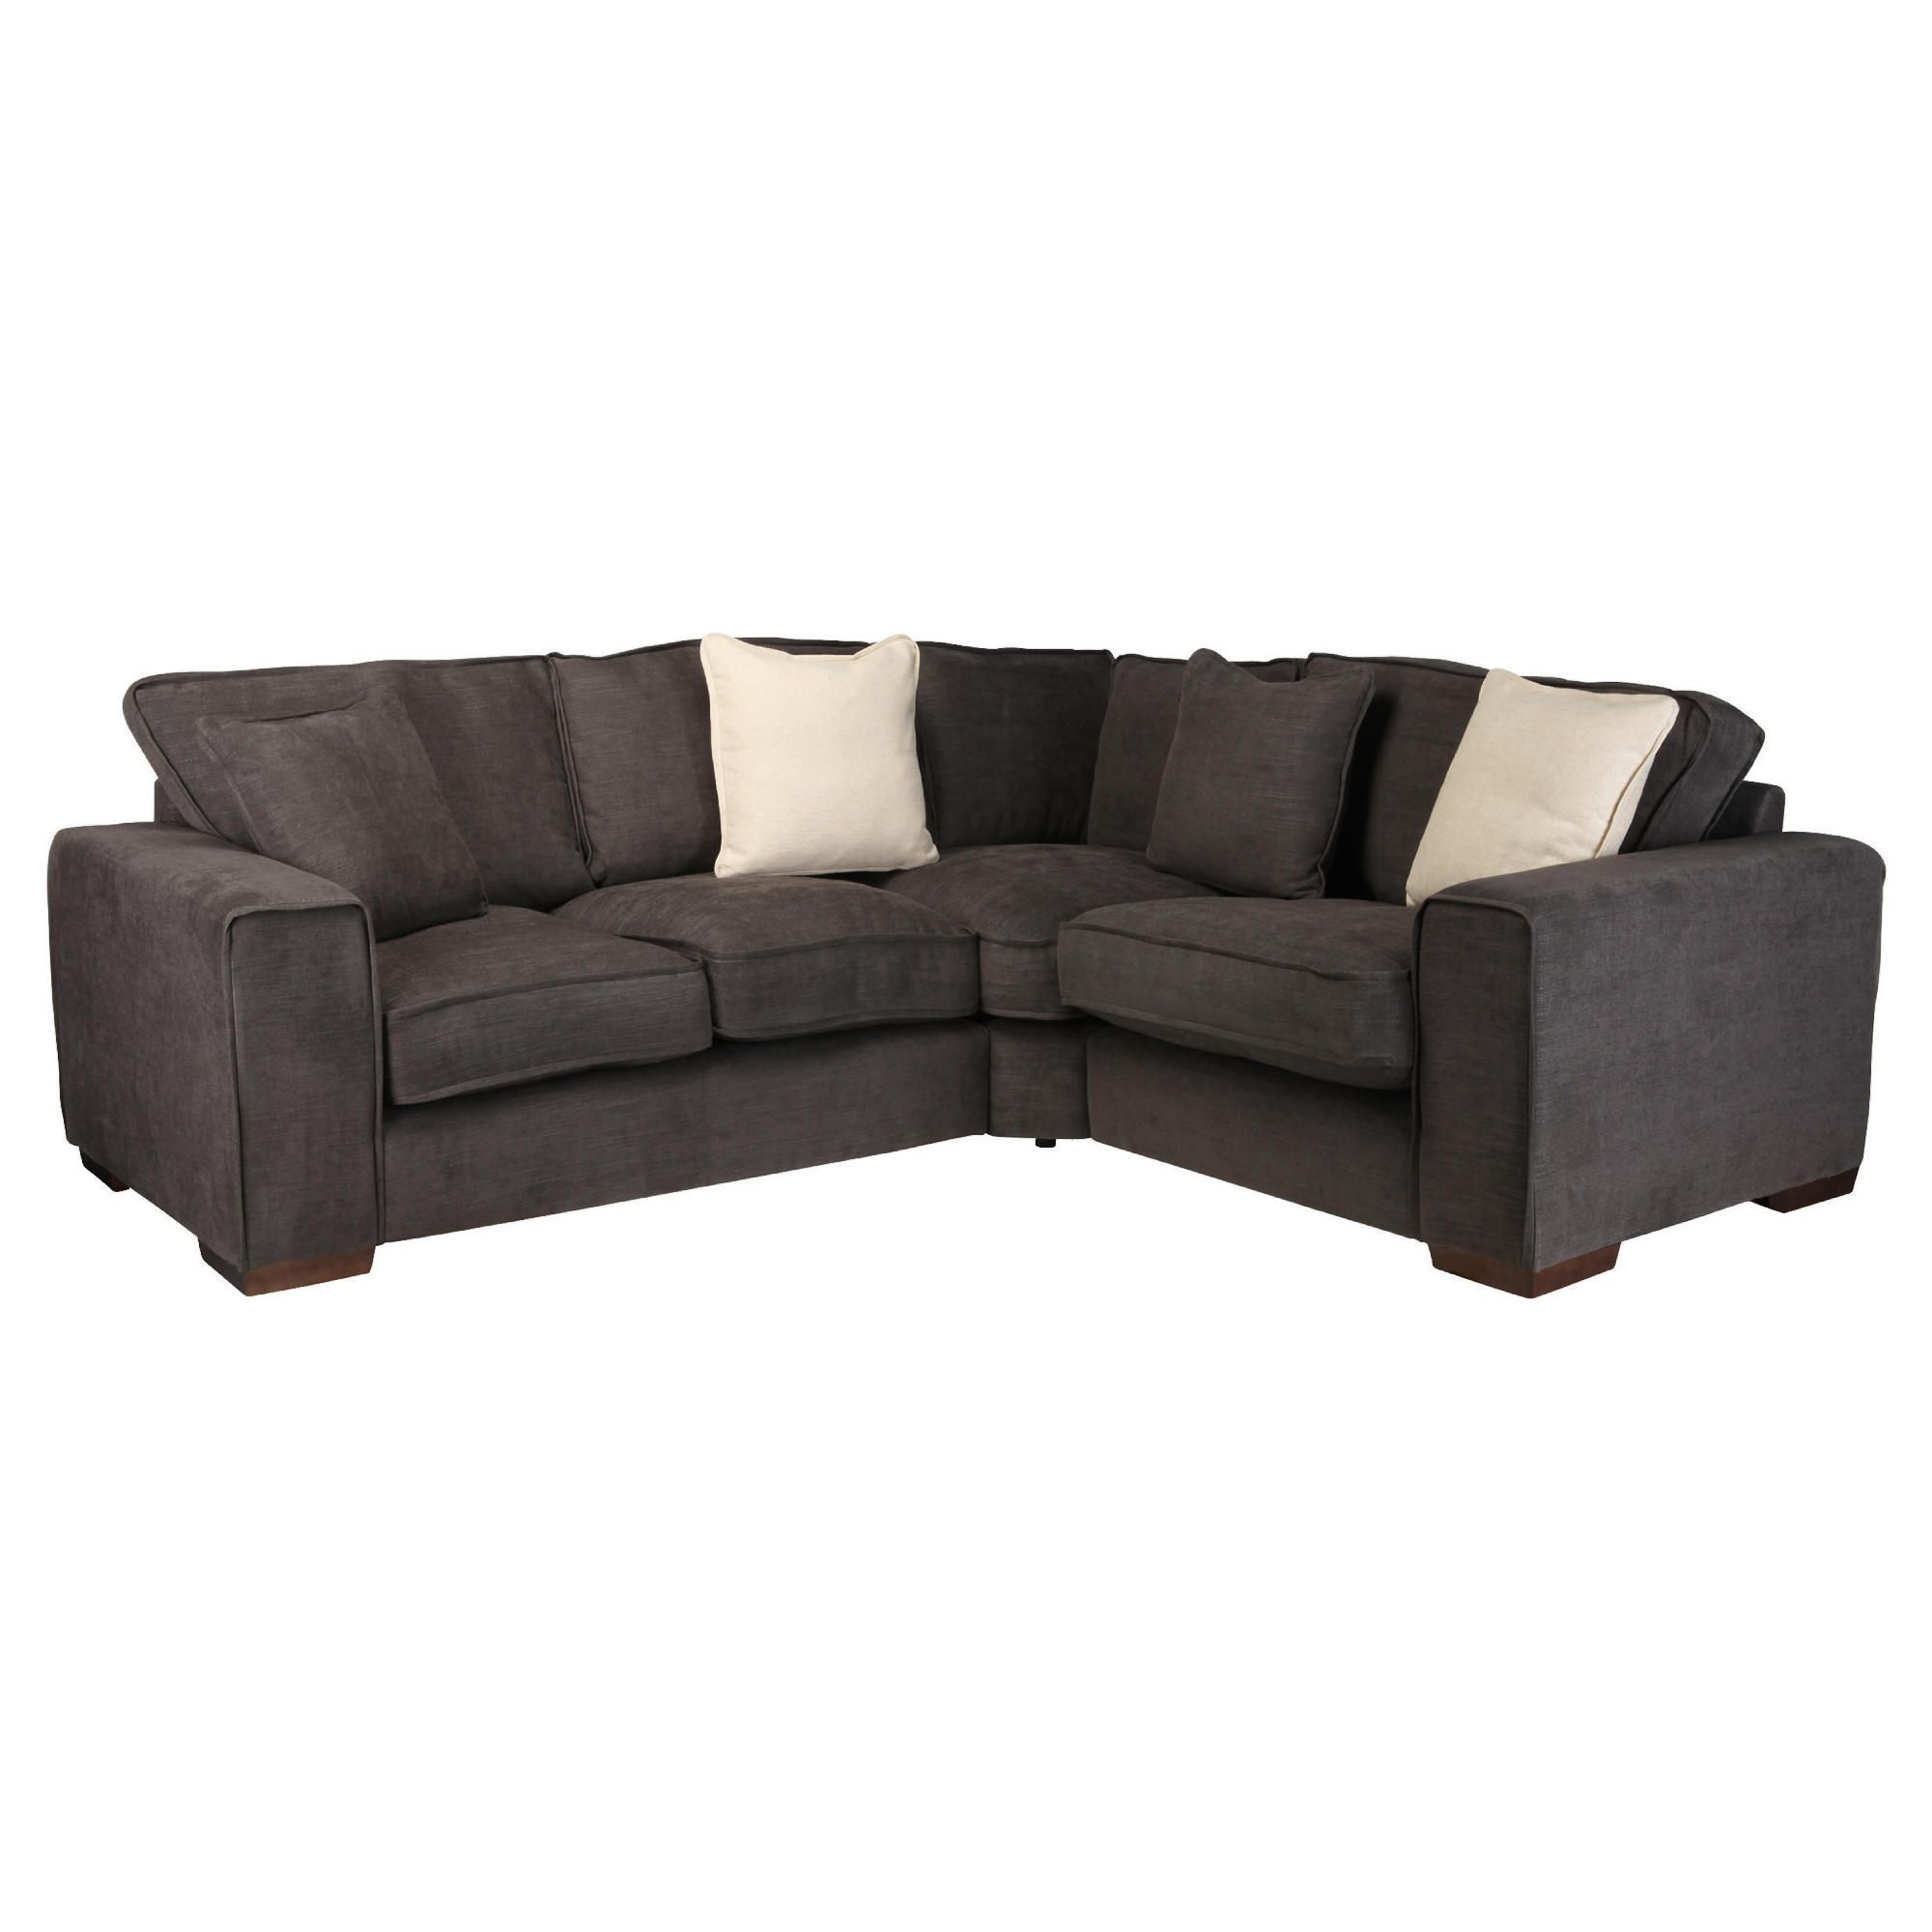 Omega Fabric Corner Sofa, Bark Right Hand Facing at Tesco Direct